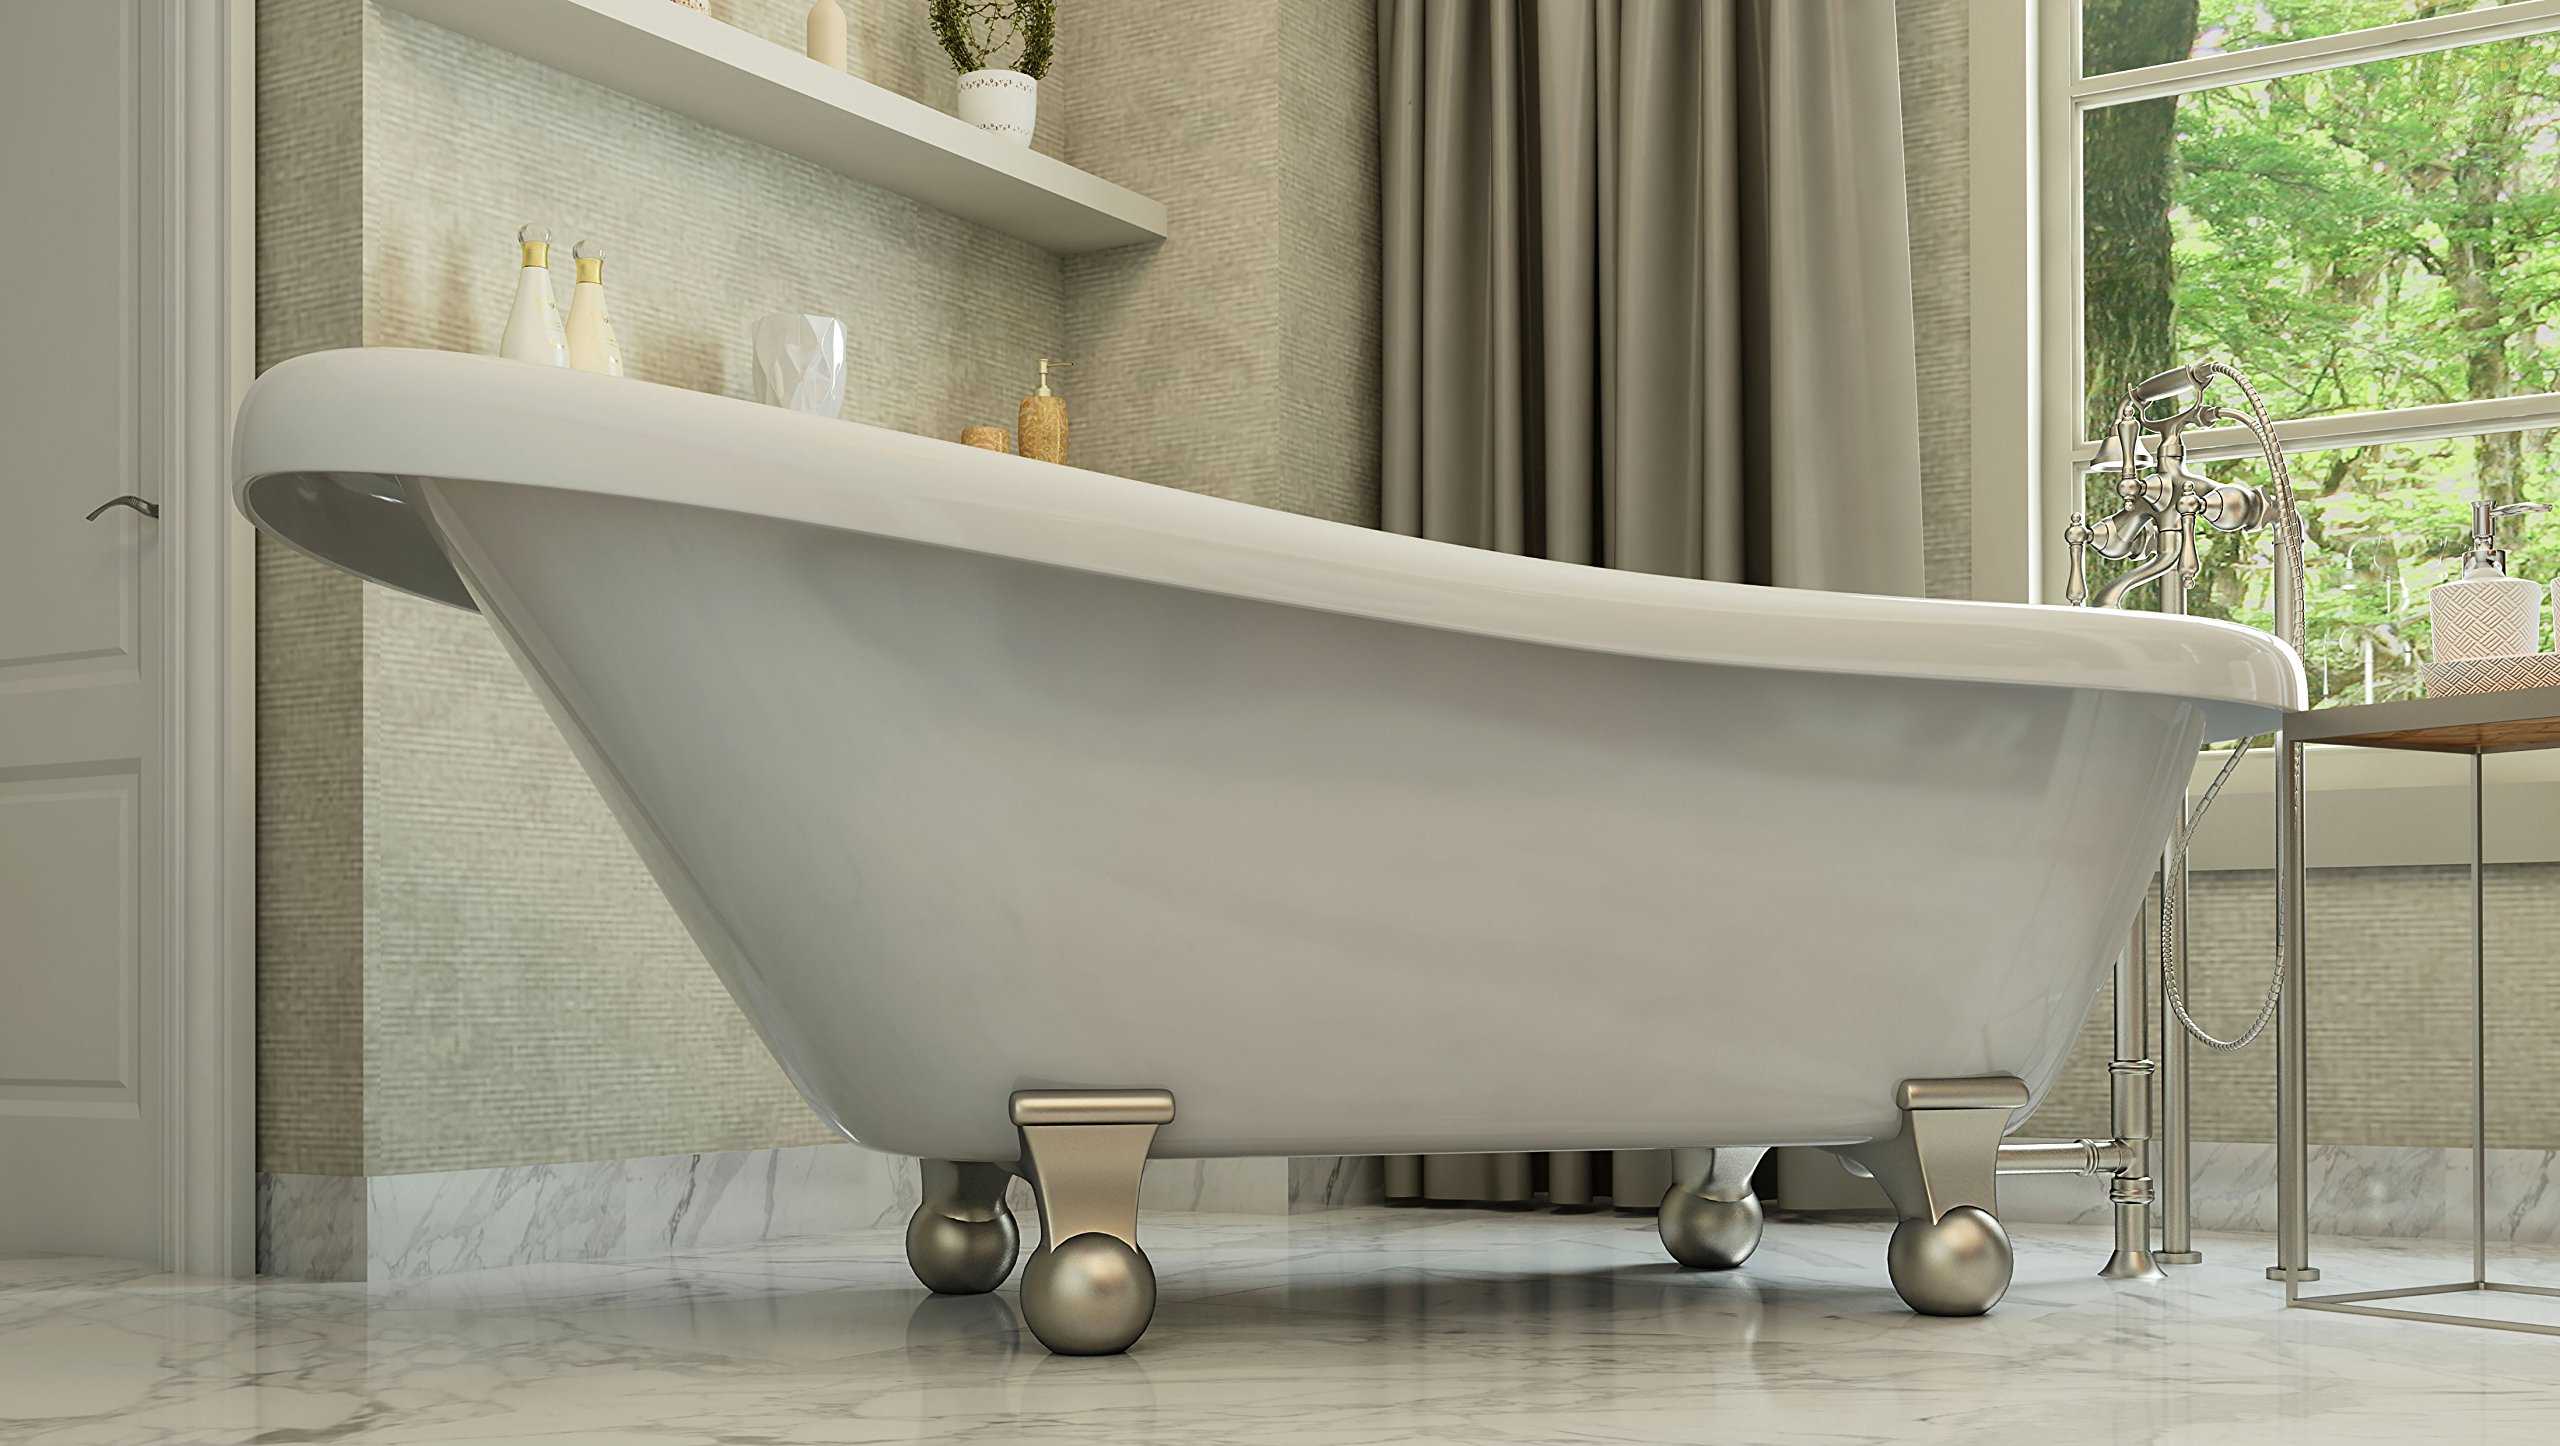 Luxury 60 inch Modern Clawfoot Tub in White with Stand-Alone Freestanding Tub Design, Includes Modern Brushed Nickel Cannonball Feet and Drain, From The Brookdale Collection by Pelham & White (Image #3)